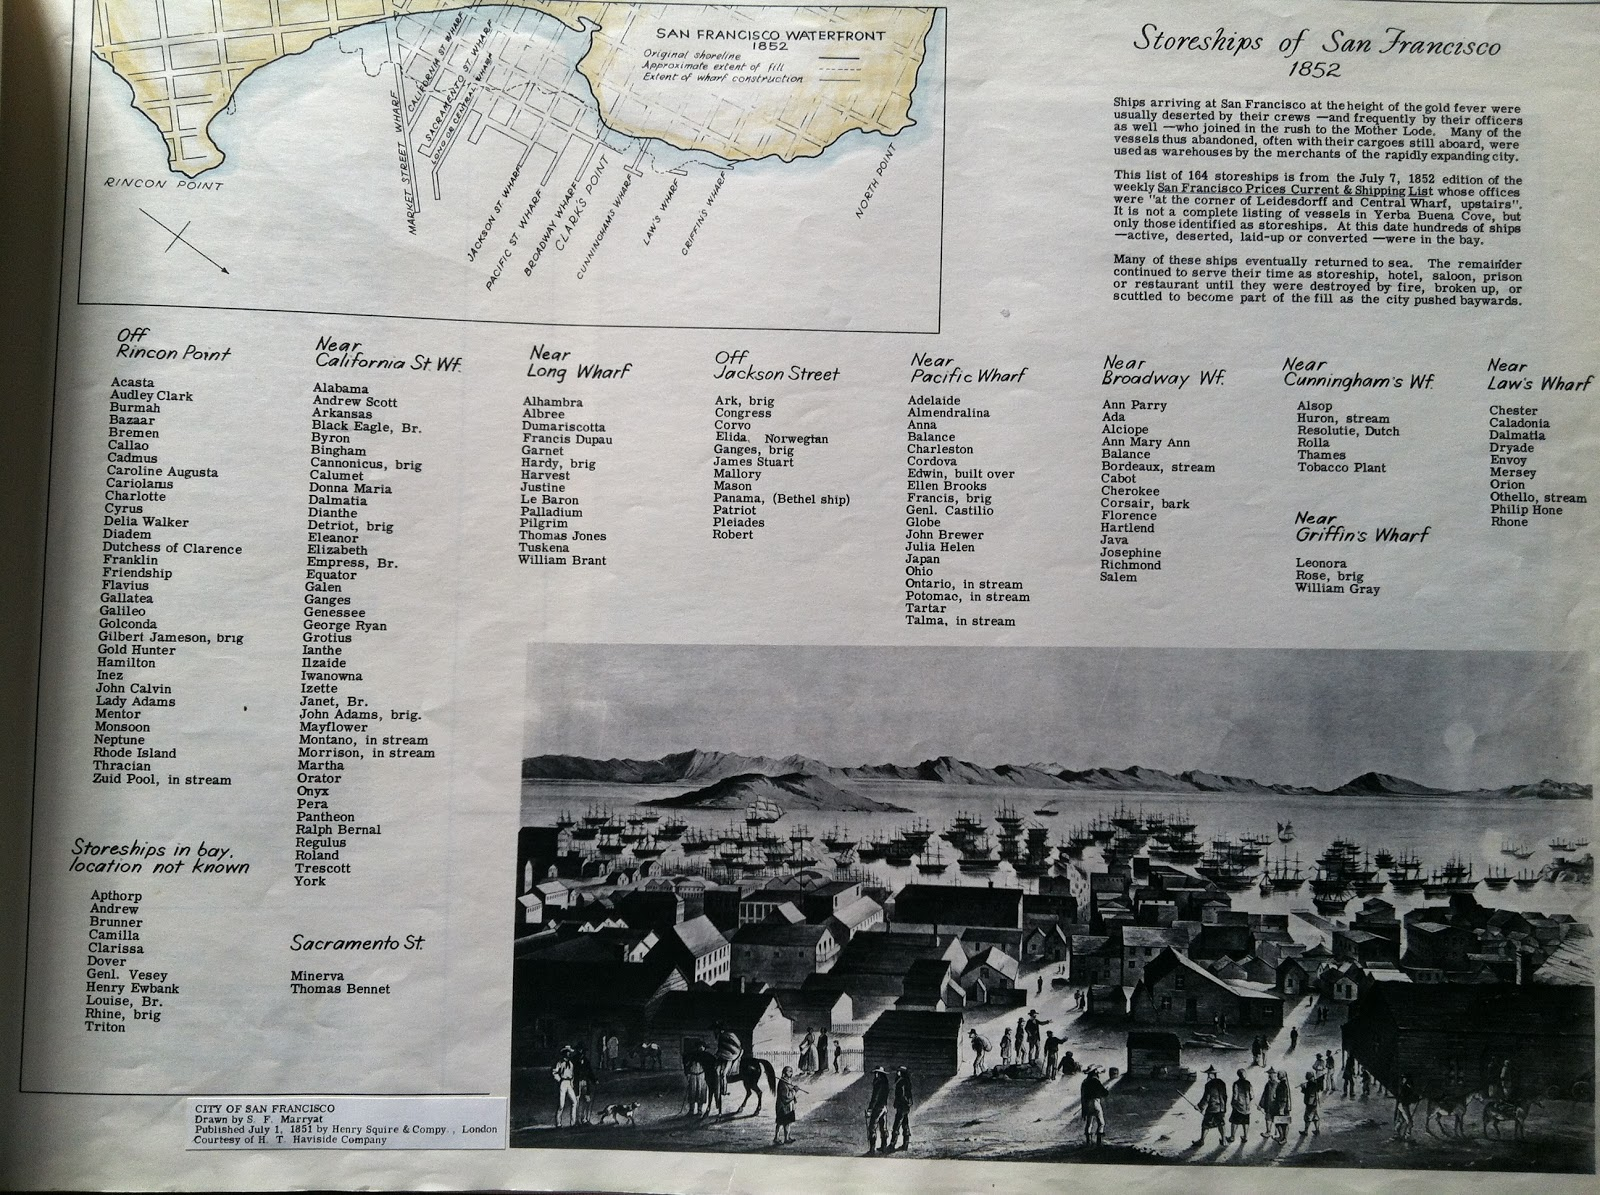 map and views of San Francisco with table of Gold Rush storeships